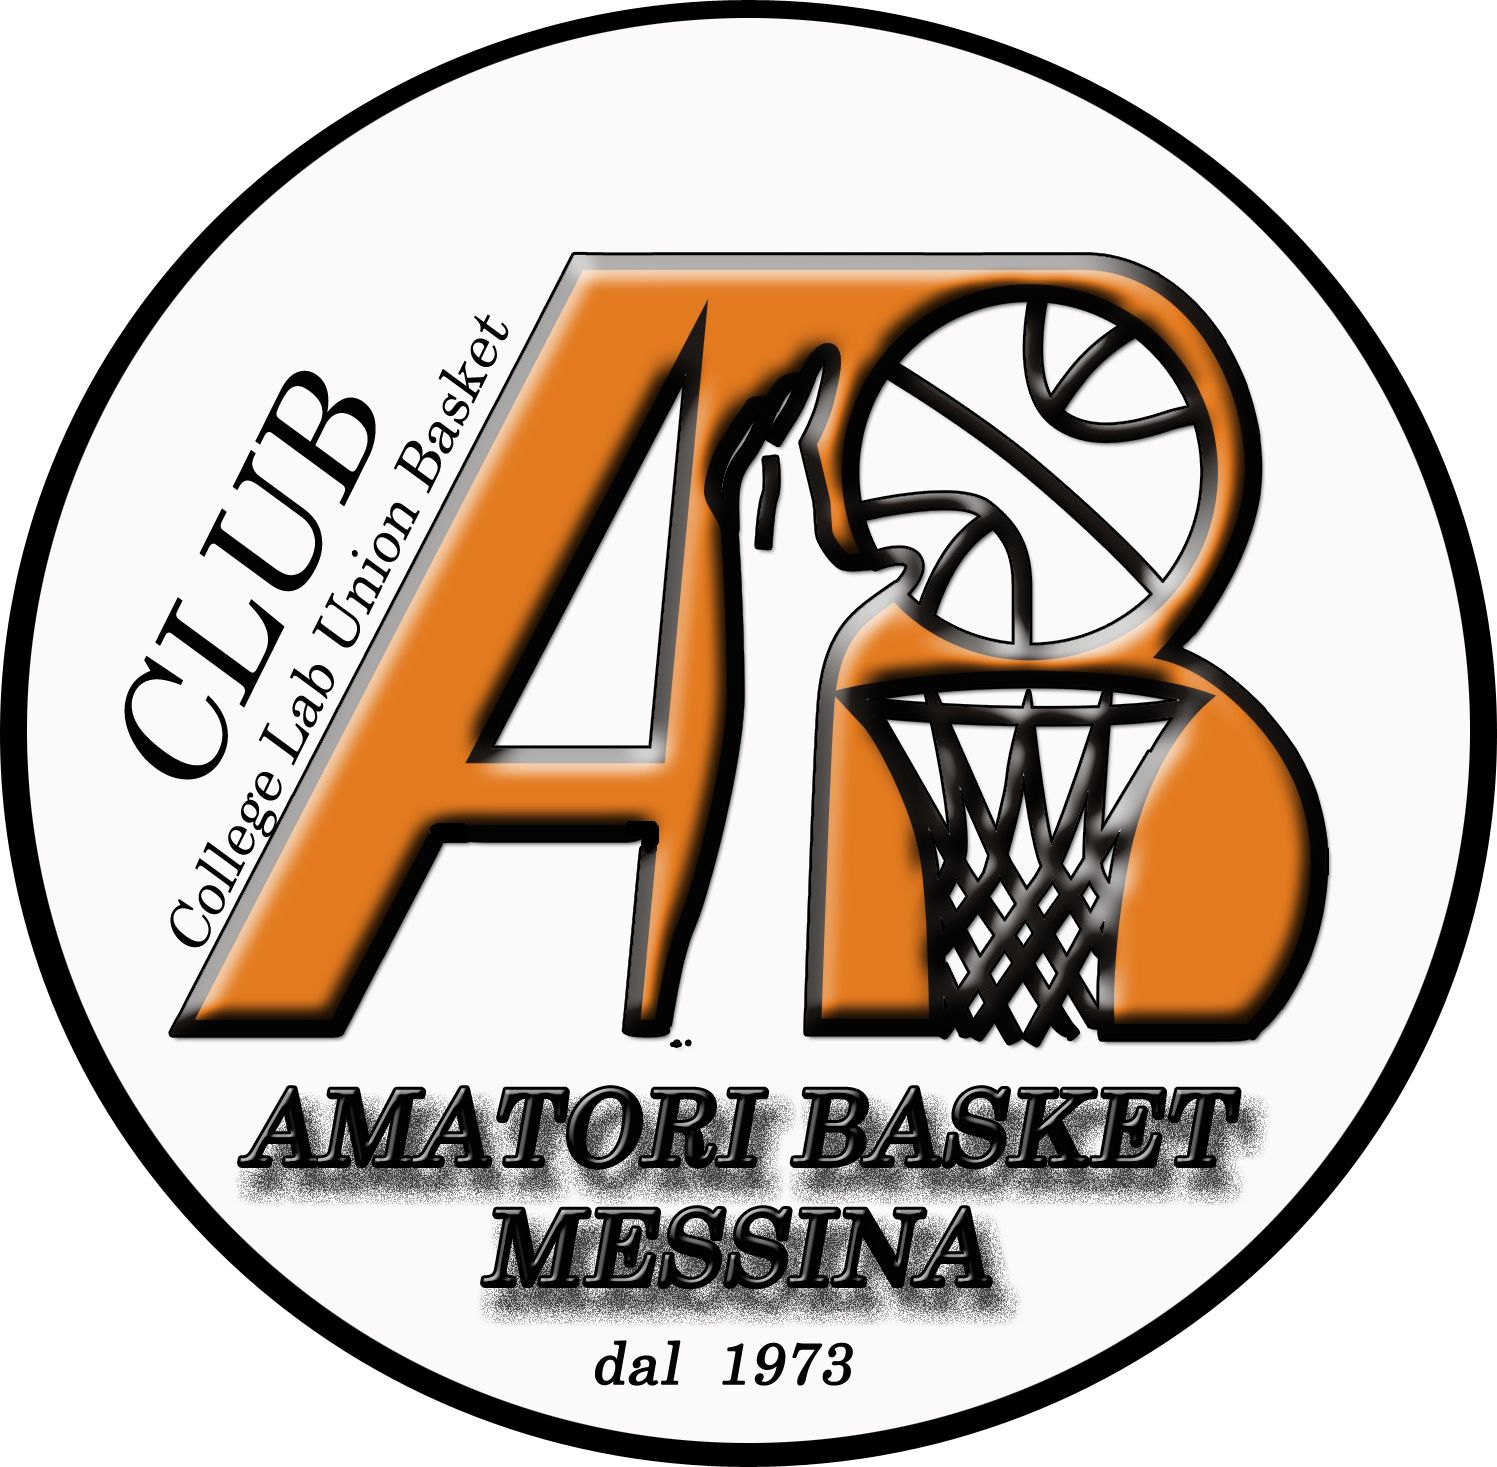 Club Amatori Basket Messina